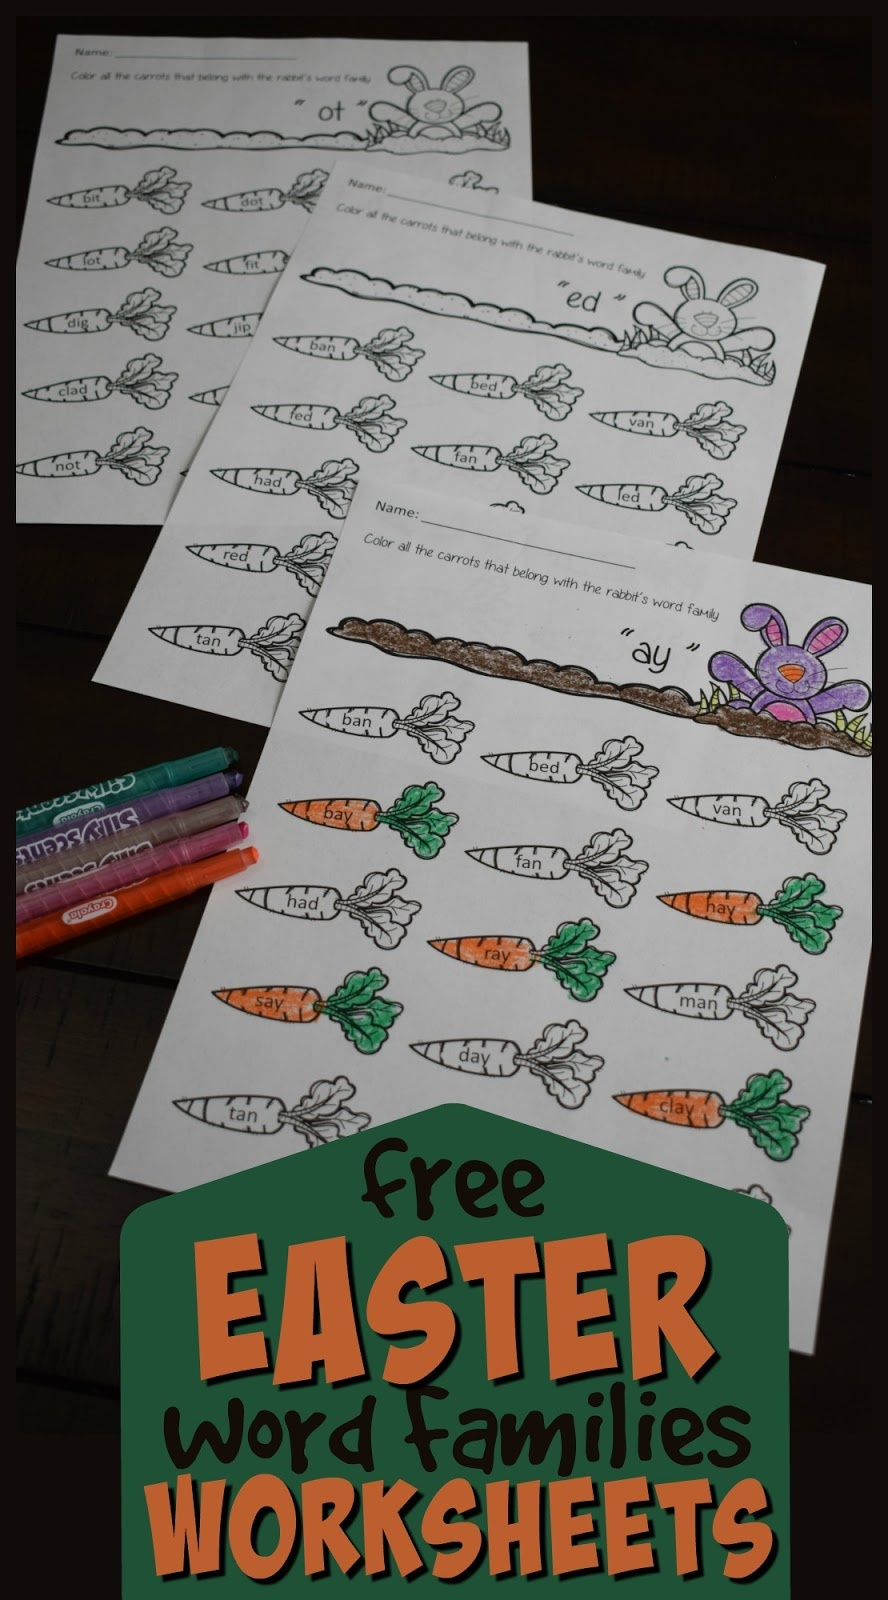 Free Easter Word Families Worksheets – Kindergarten Worksheets And Games - Free Printable Word Family Worksheets For Kindergarten